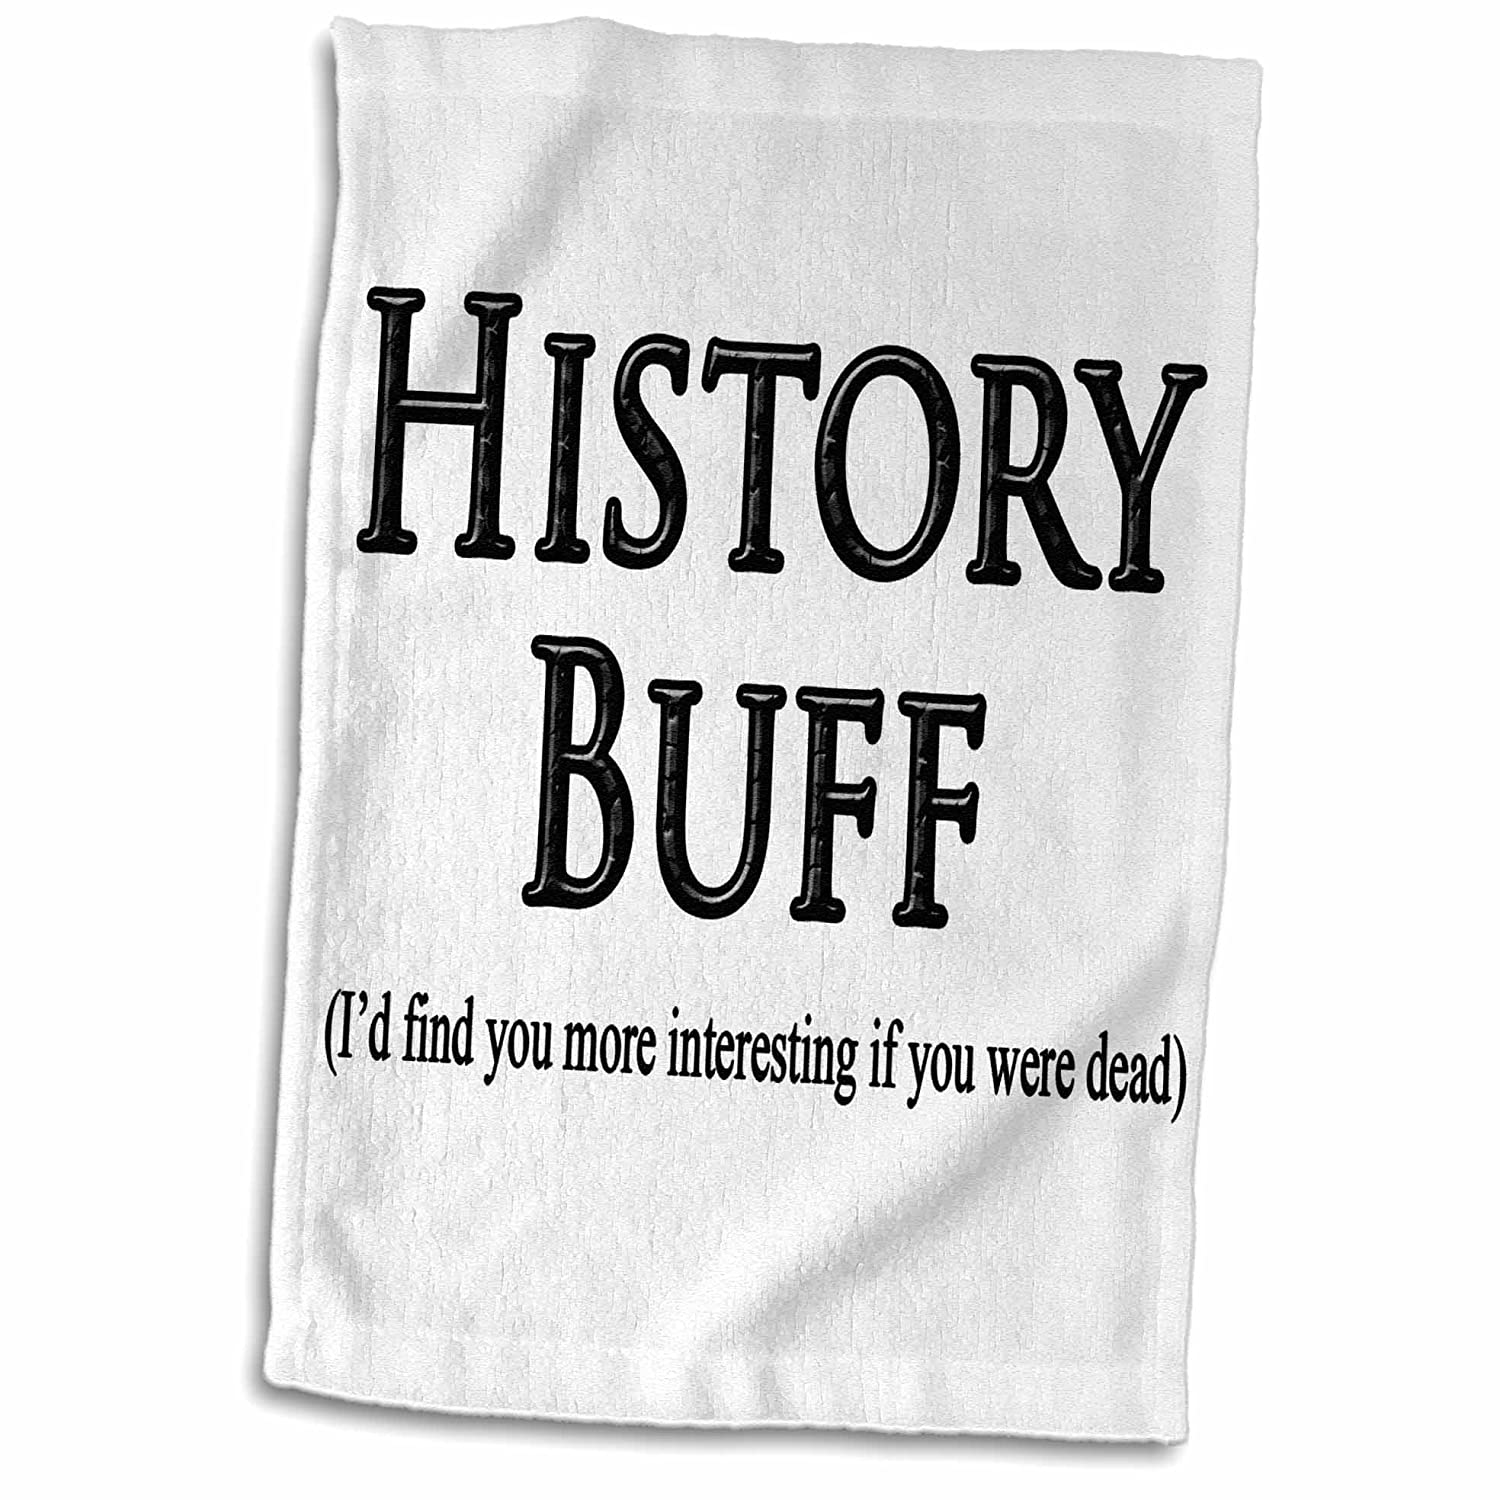 3D Rose History Buff Id find You More Interesting if You were Dead TWL/_193319/_1 Towel 15 x 22